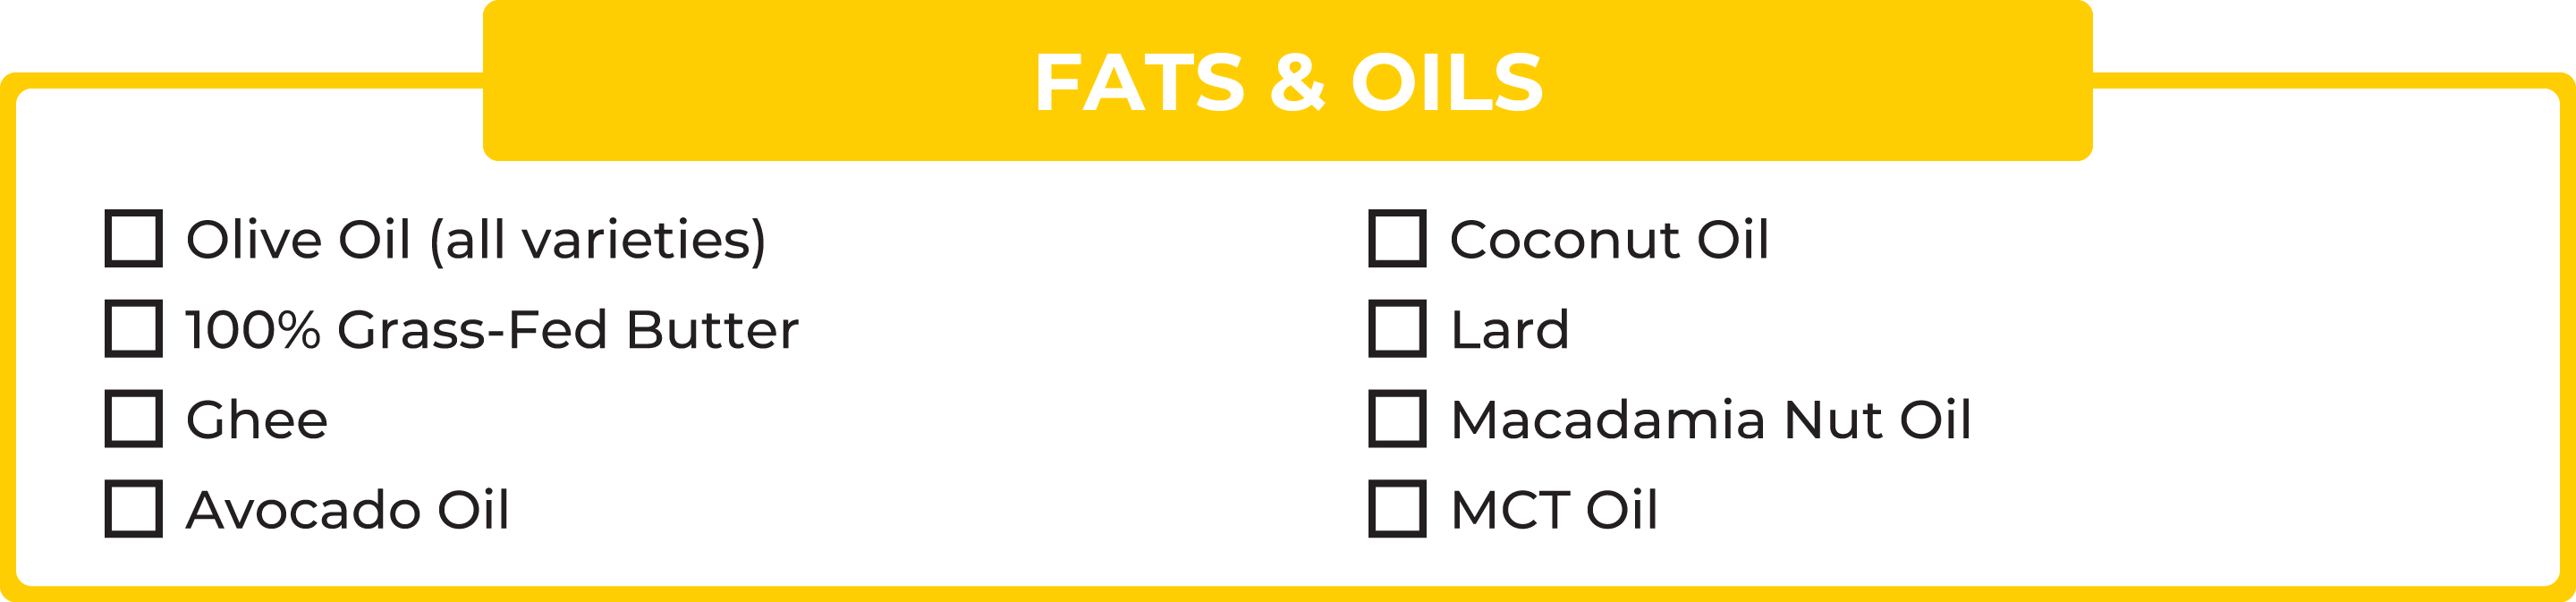 No carb foods: Fats & oils